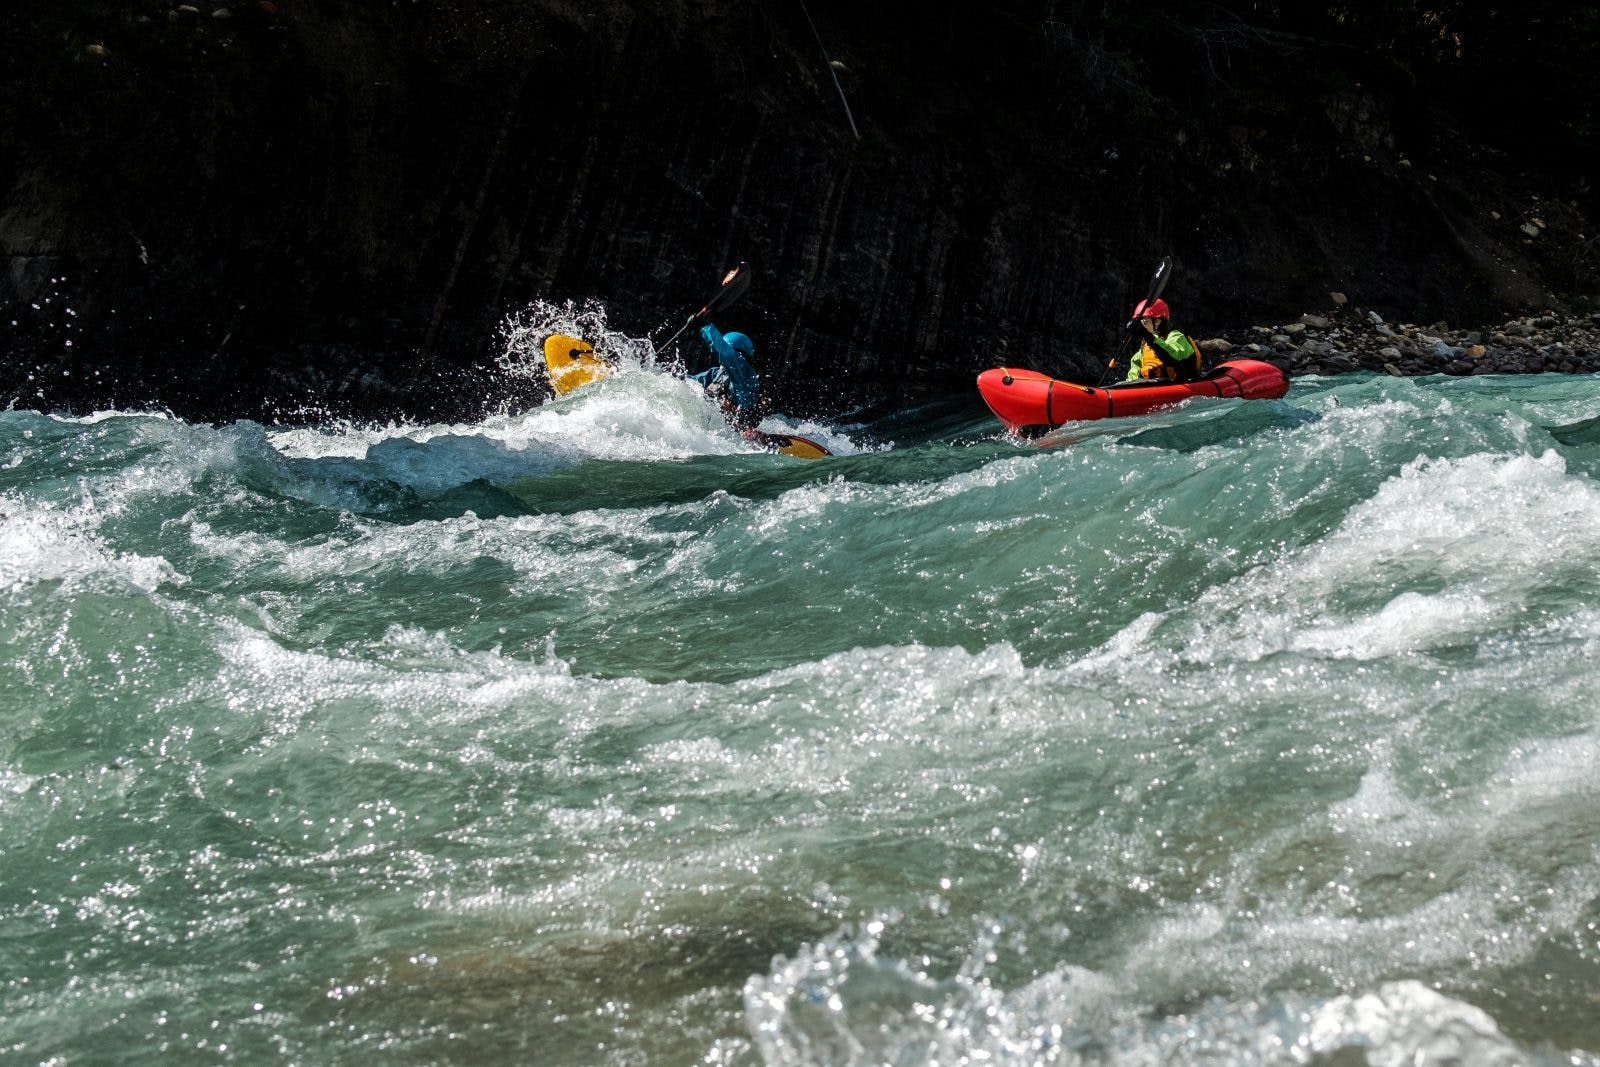 Rachel Davies and Laura Robinson smashing wave trains on the Snake Indian River. Photo by Coburn Brown